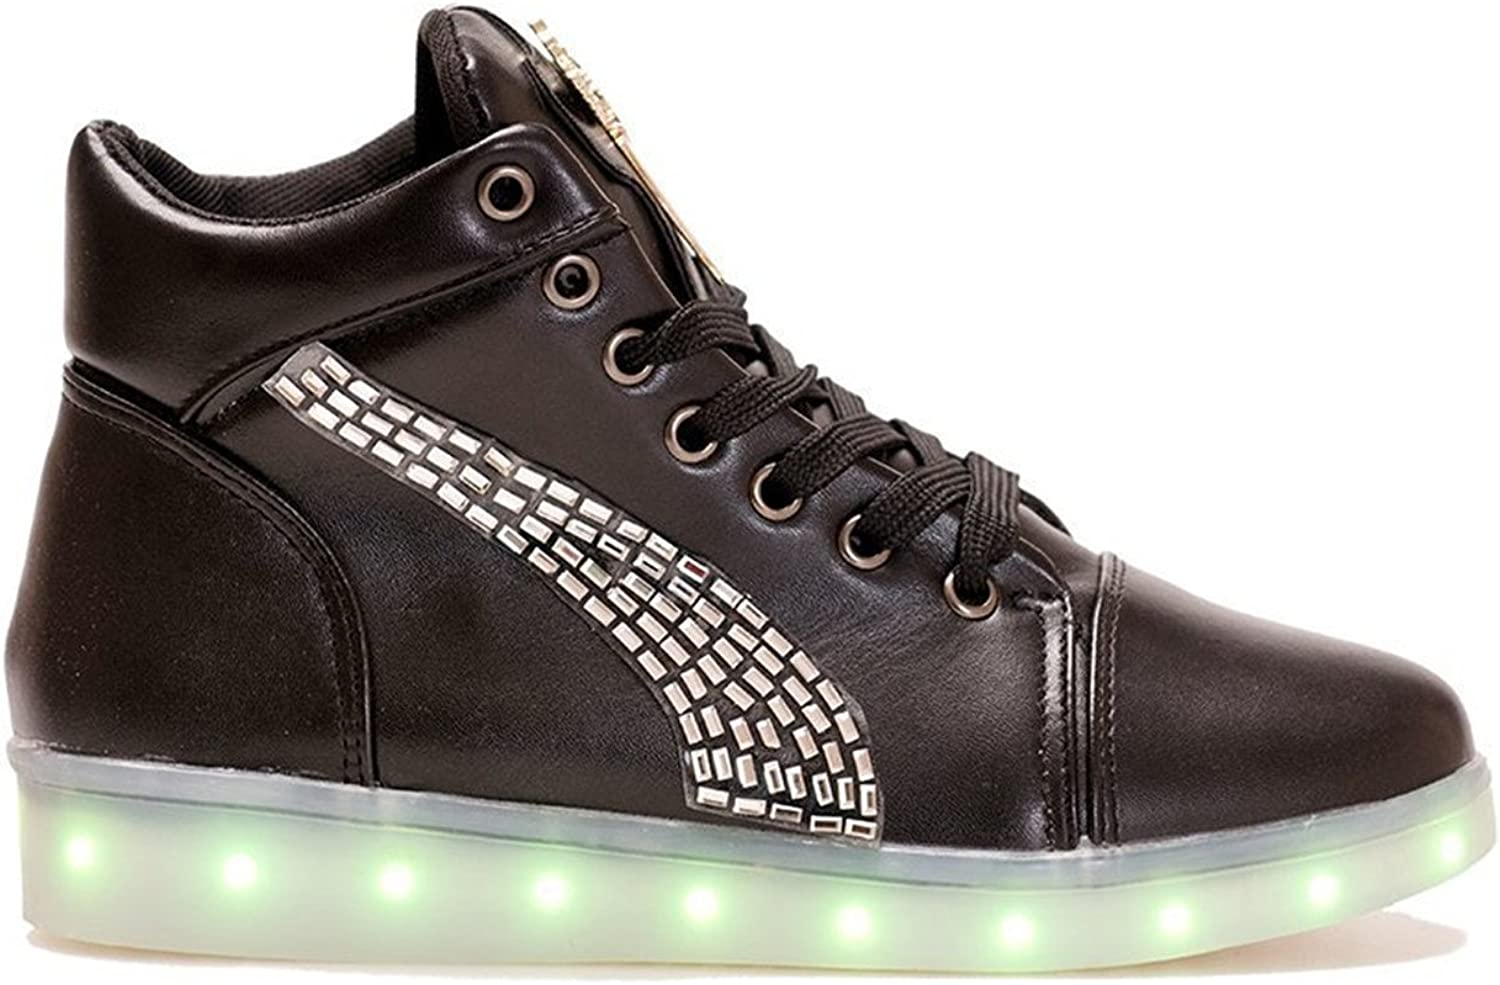 Reinhar Fashionable Girls White Led Light Up shoes for Adults Women Best Gifts(Choose a Bigger Size)